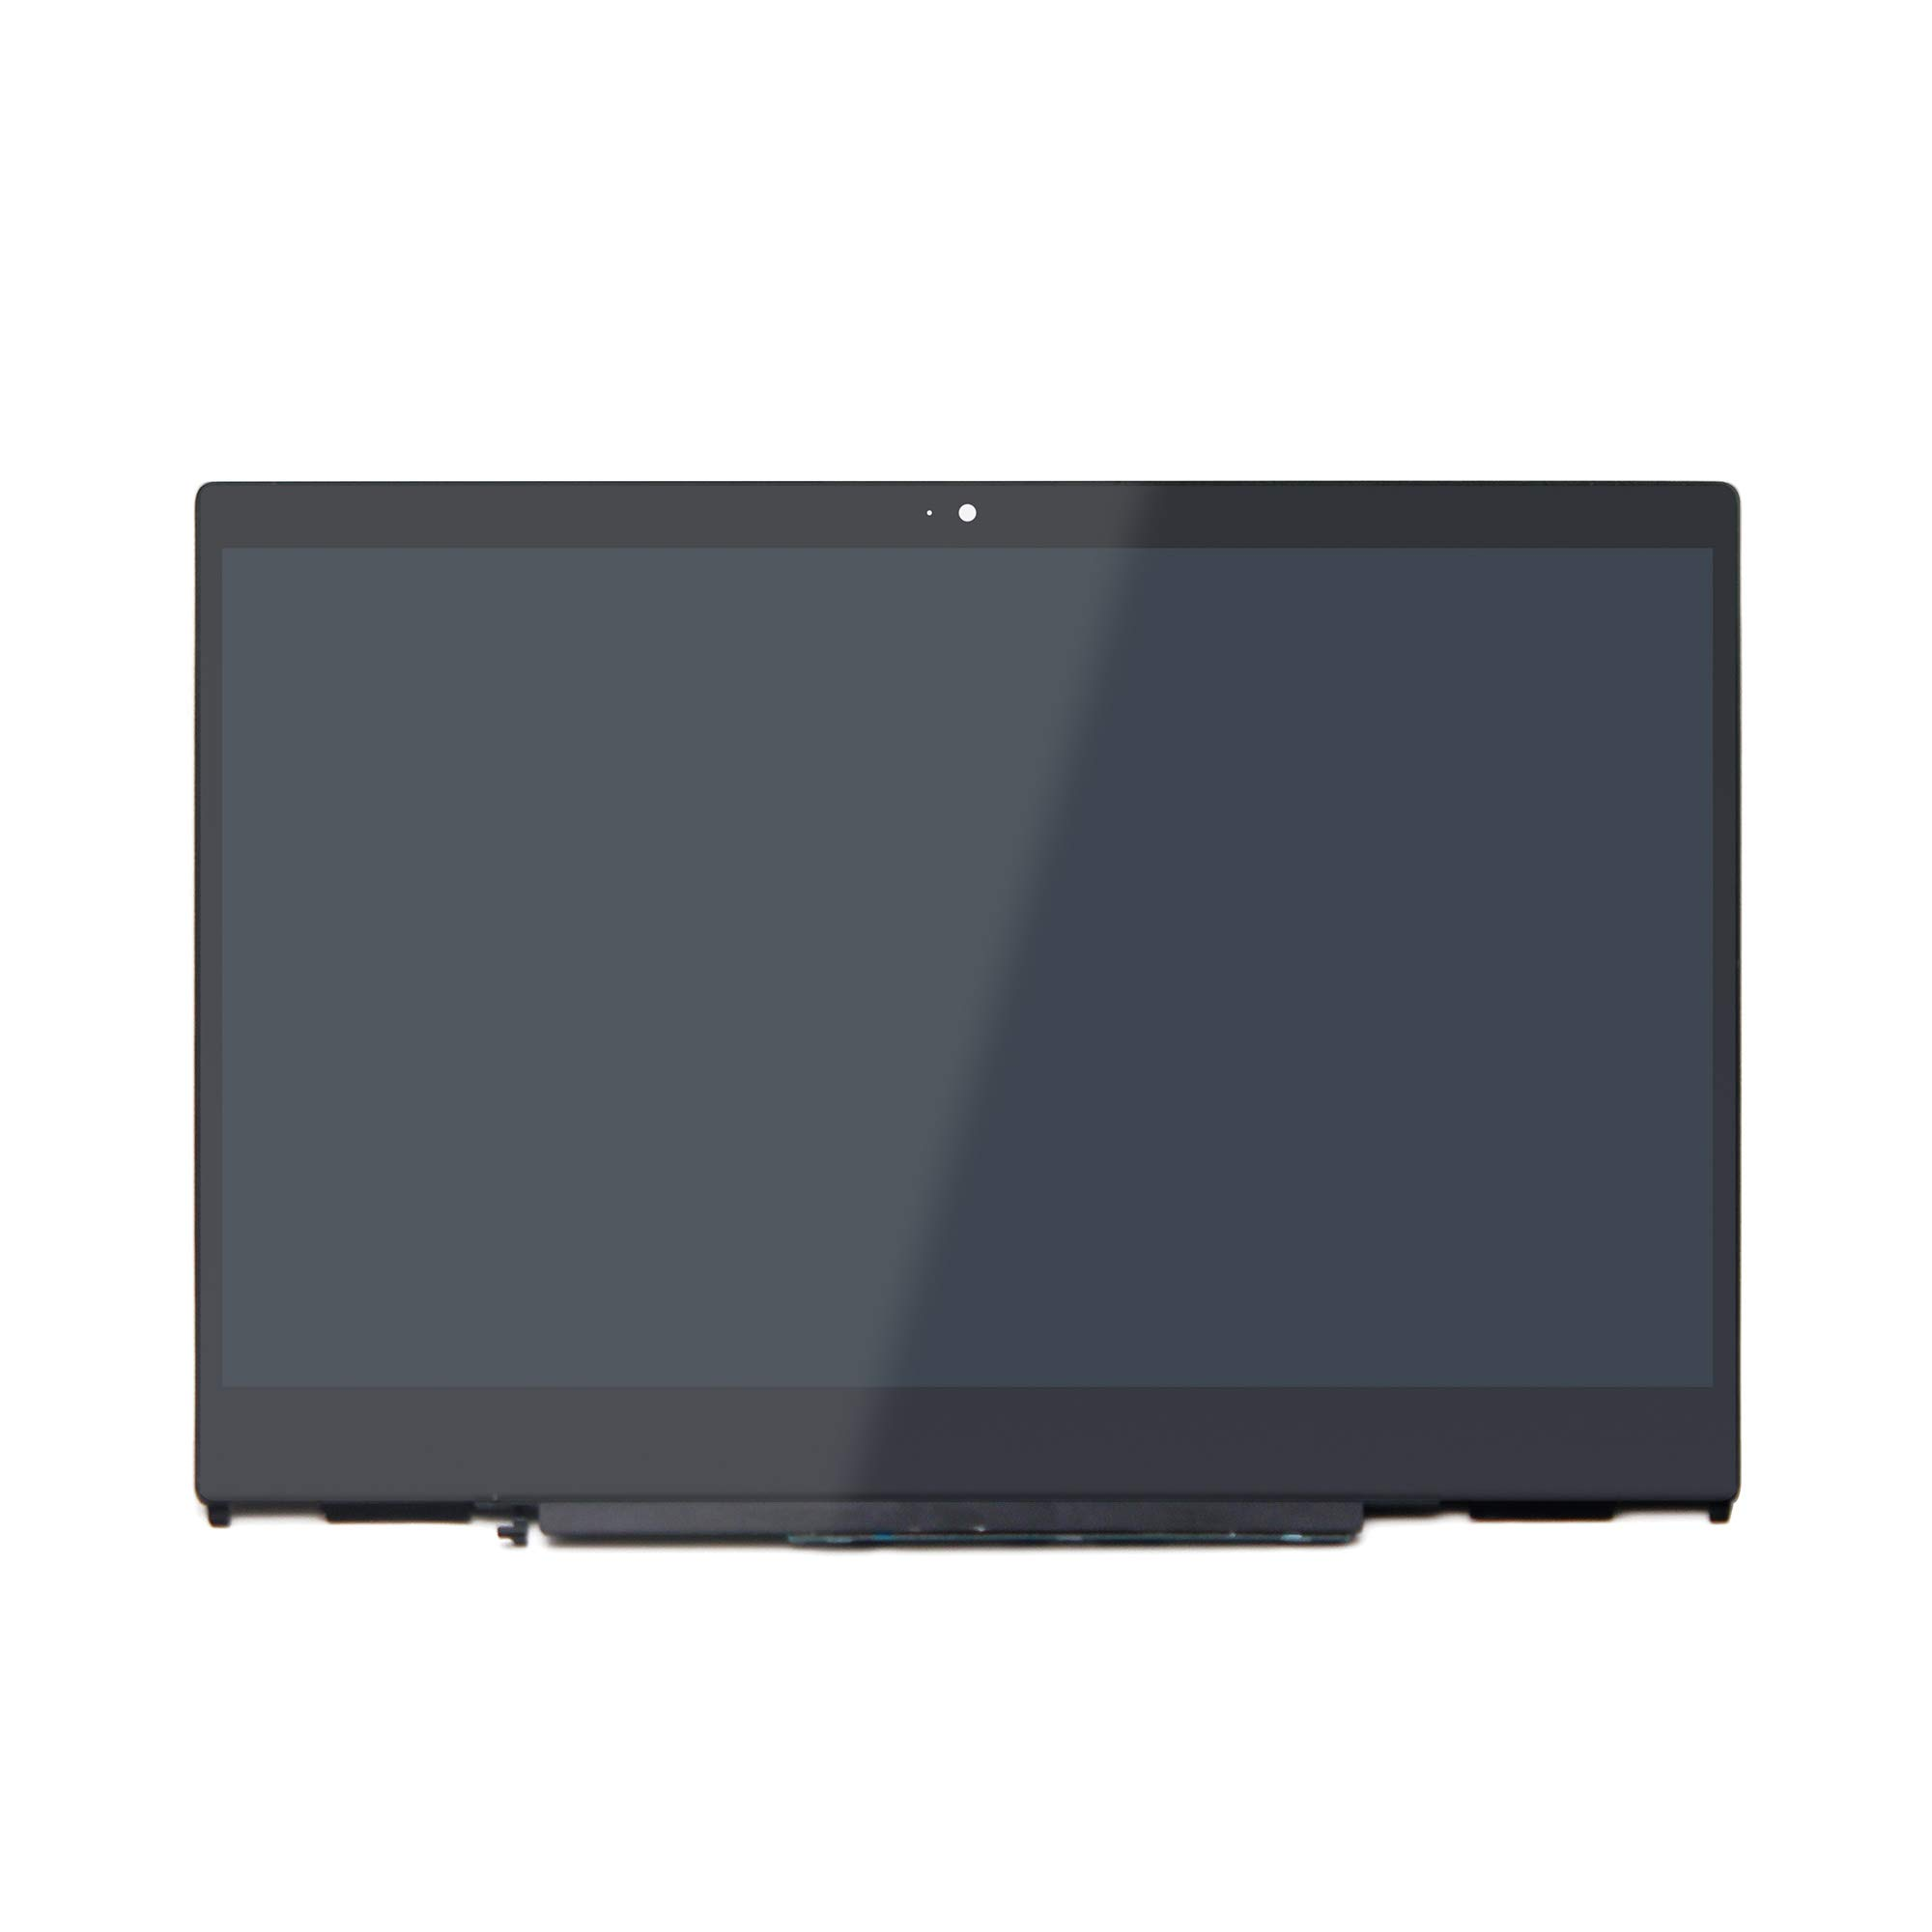 LCDOLED 14.0'' 1920x1080 IPS LCD Display Touch Screen Digitizer Assembly + Bezel + Board Replacement for HP Pavilion x360 14m-cd0000 14-cd0011nr 14m-cd0001dx 14m-cd0003dx 14m-cd0005dx 14m-cd0006dx